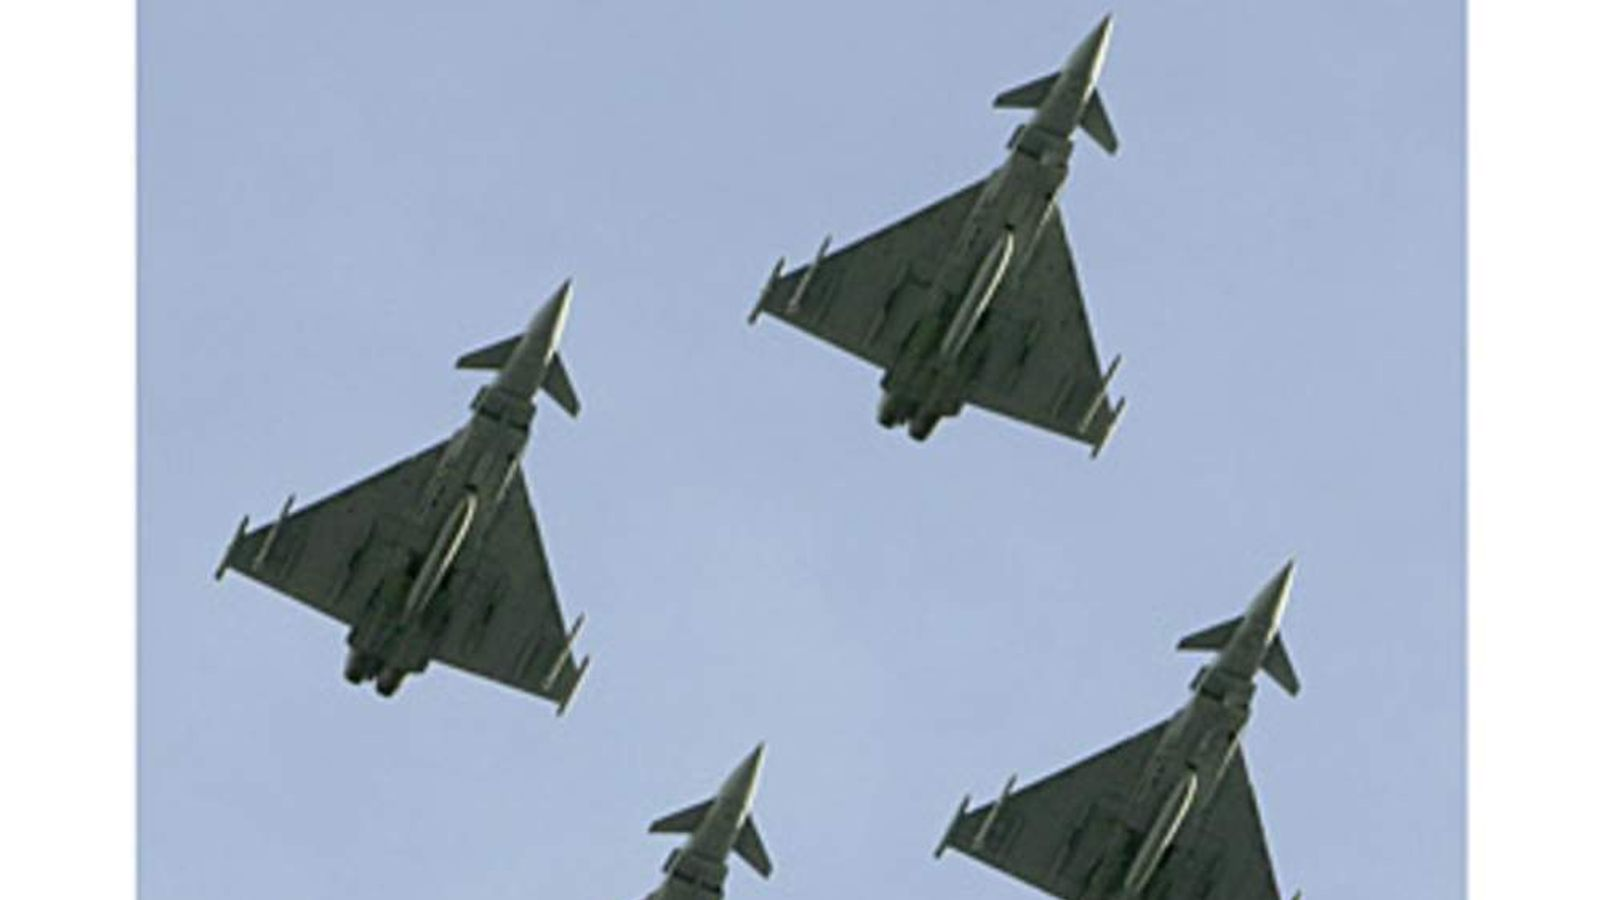 PG RAF Typhoons go operational Eurofighter 6